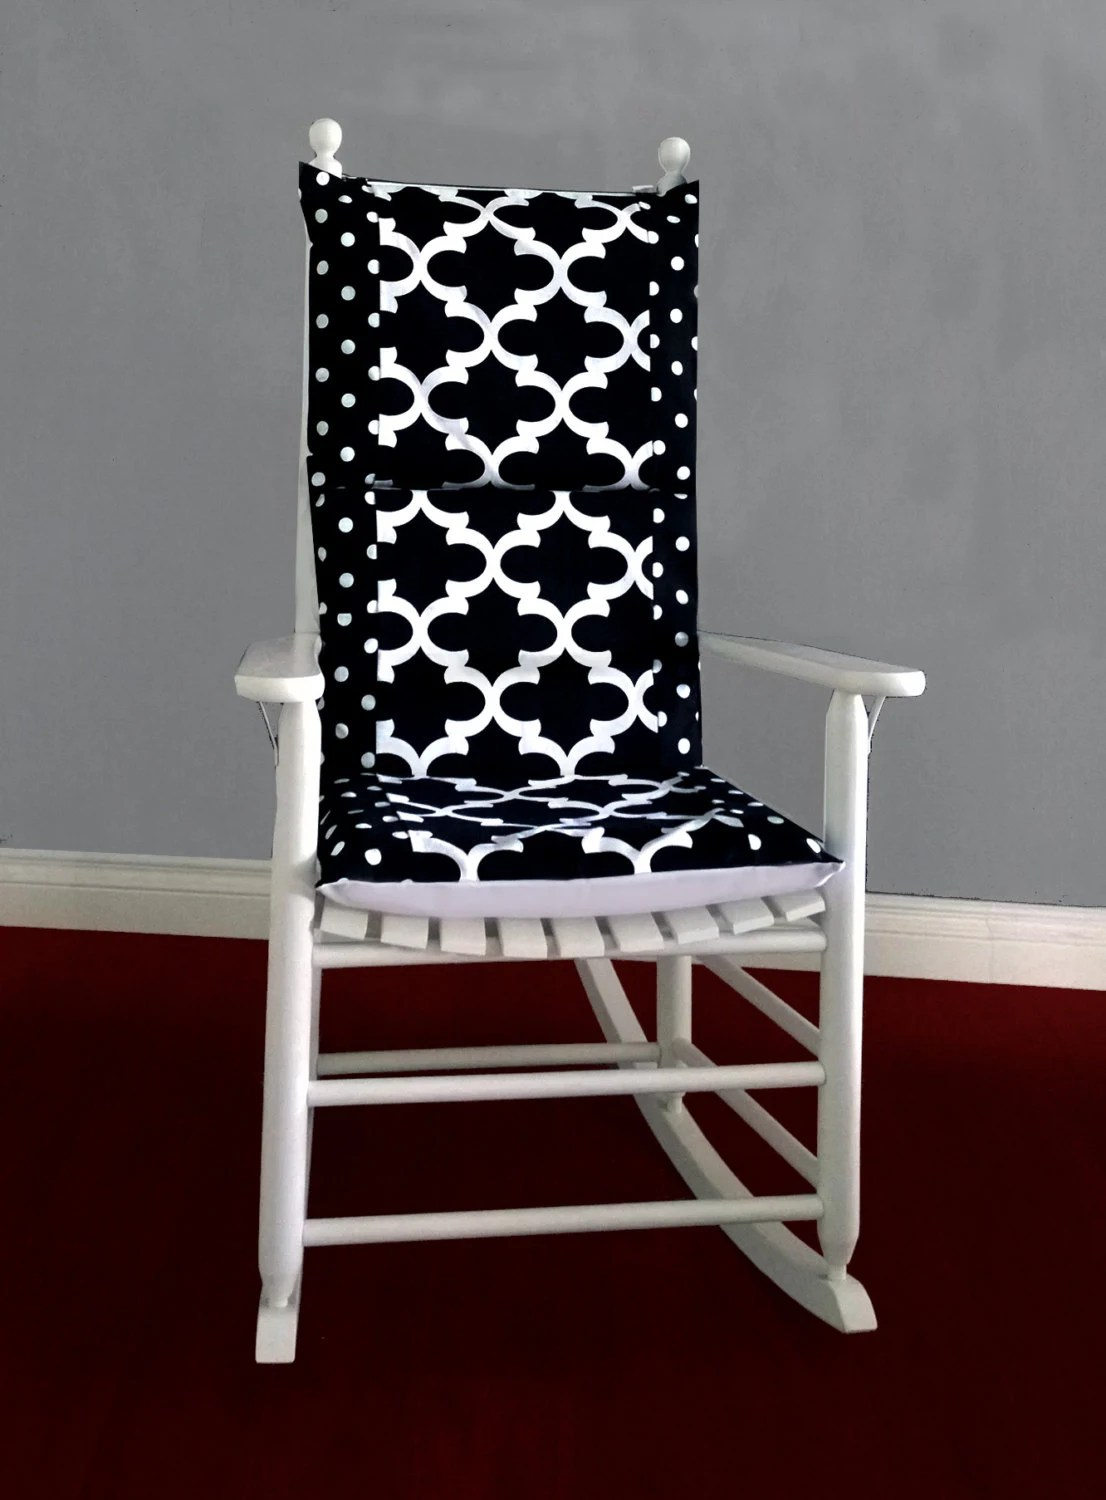 polka dot rocking chair cushions lift chairs for elderly medicare cushion black fynn white by rockincushions